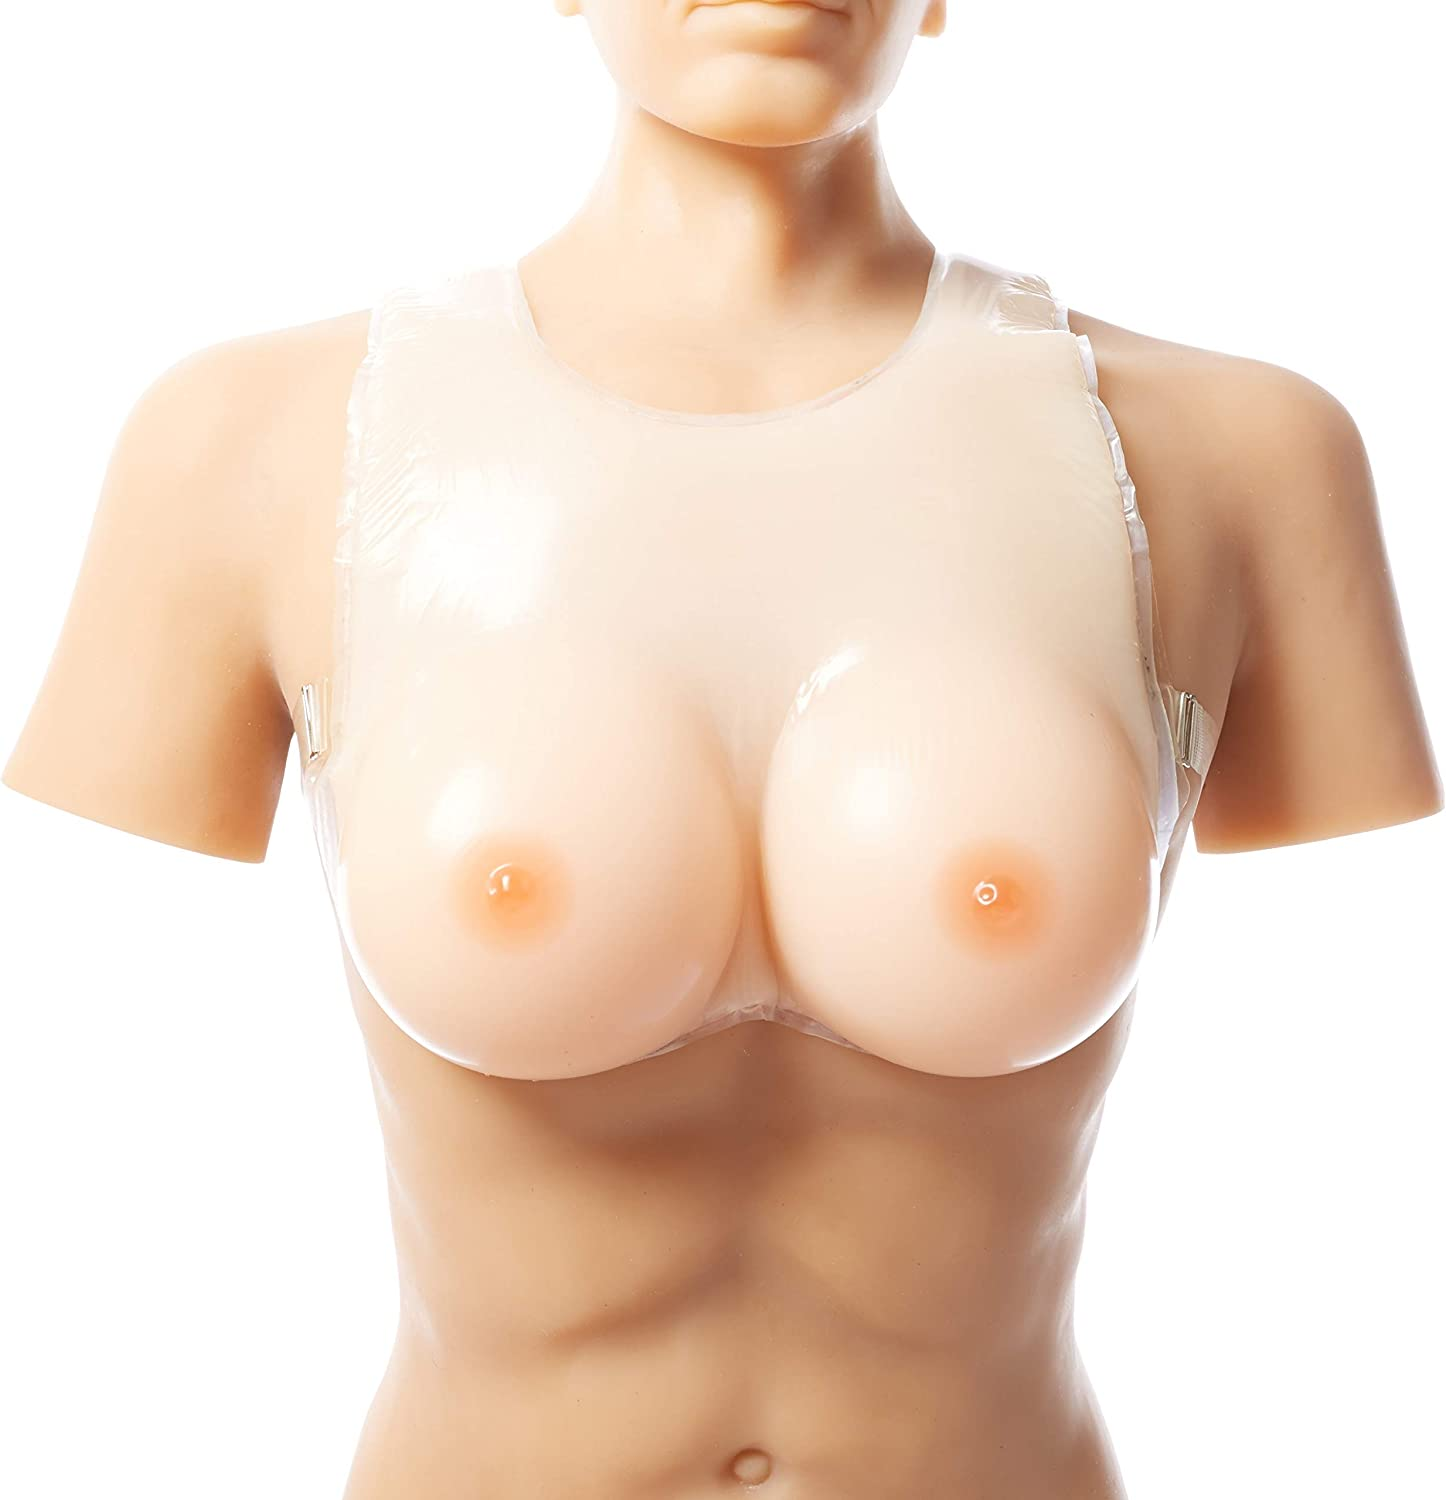 StrapOn Silicone Breast Form, Lifelike False Boobs for Crossdresser Transgender Soft Comfortable Prosthesis Dressed as Woman